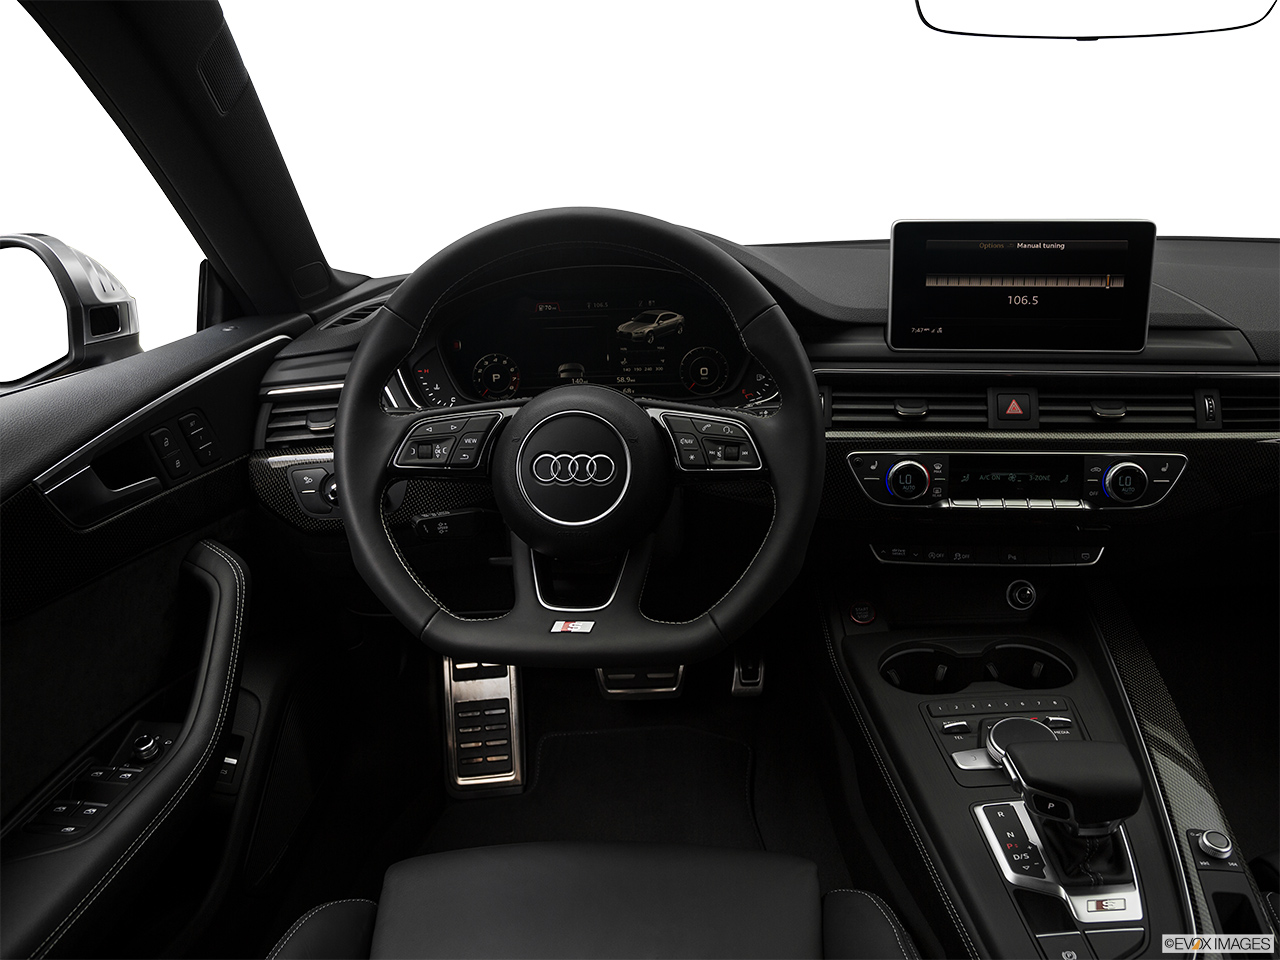 2019 Audi S5 Sportback Premium Plus 3.0 TFSI Steering wheel/Center Console.